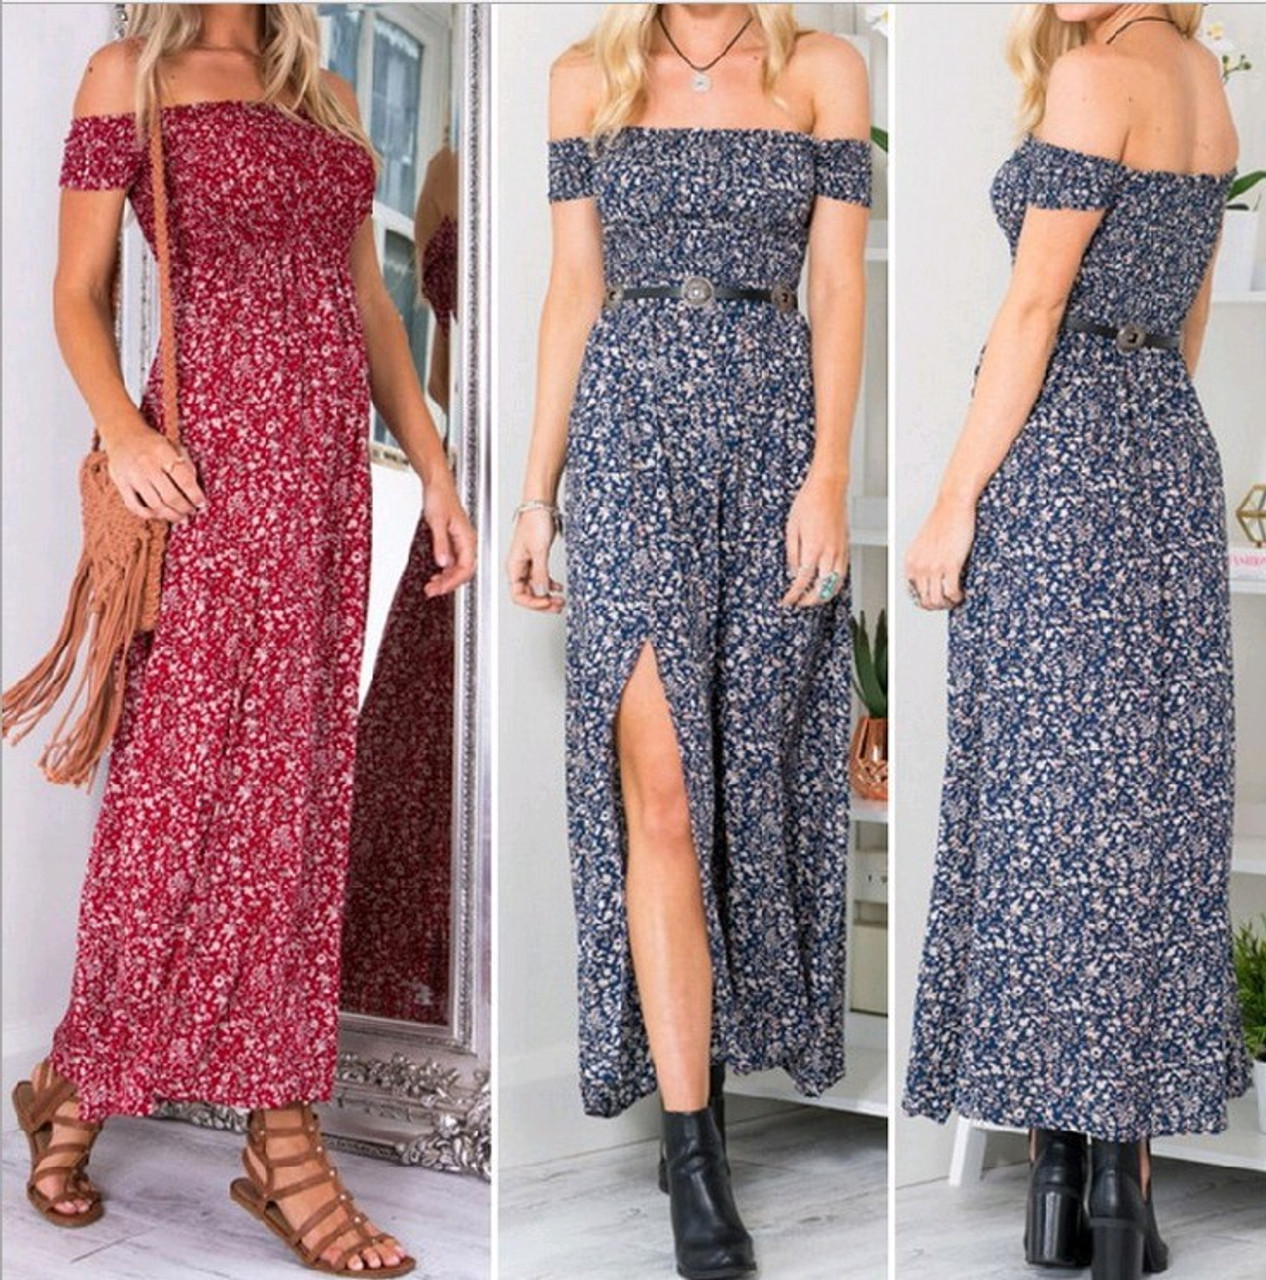 b0b87c9c1c9 ... Sexy Strapless Beach Summer Dress Sundresses Vintage Bohemian Maxi Dress  Robe Femme Boho Floral Women Split ...